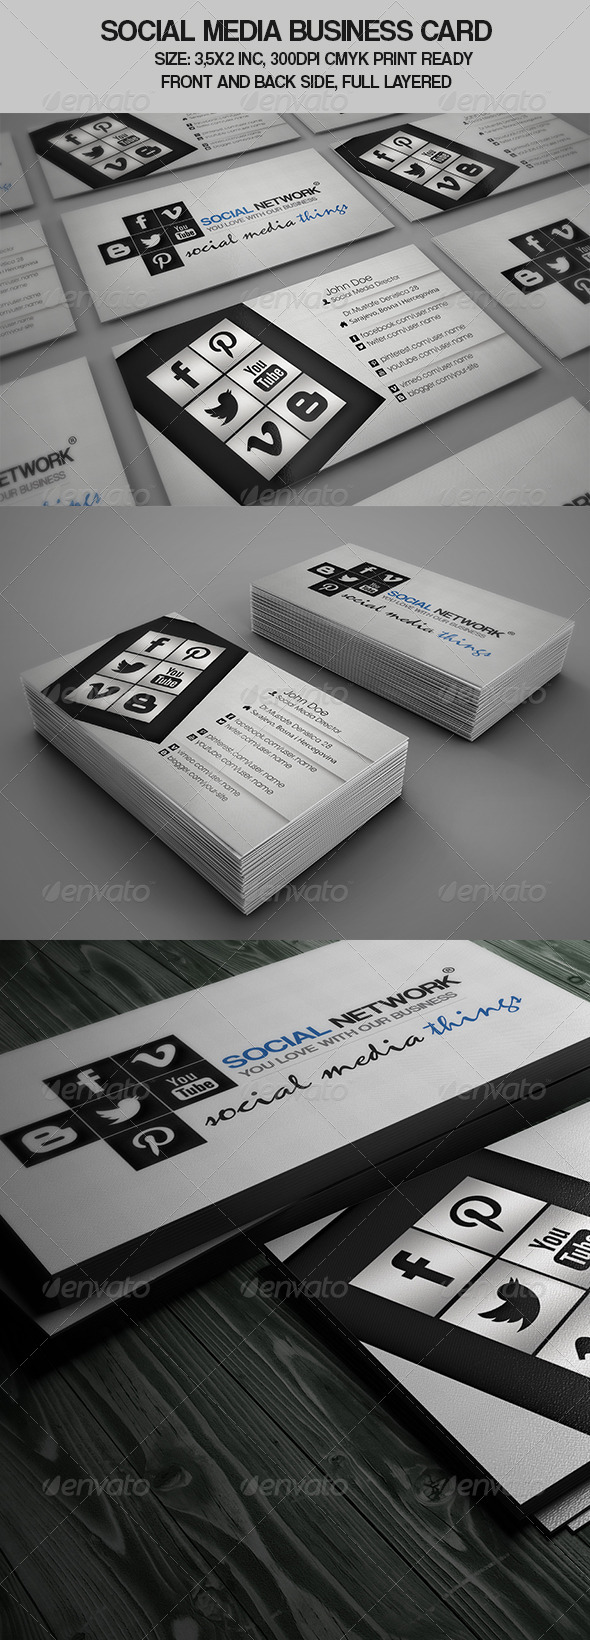 GraphicRiver Social Media Business Card 4543394